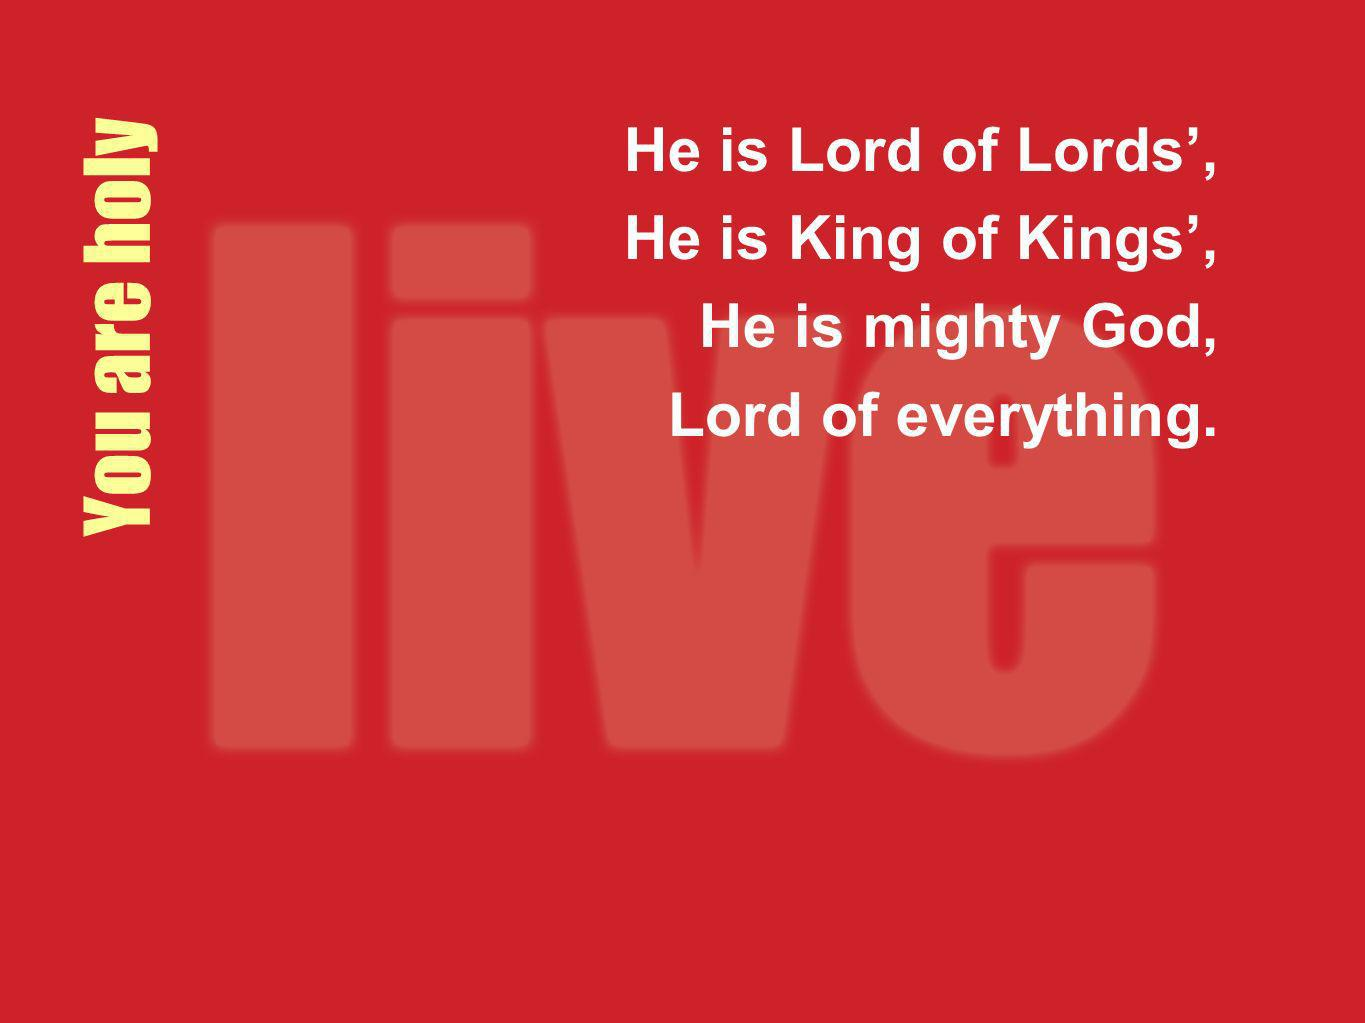 You are holy He is Lord of Lords', He is King of Kings',